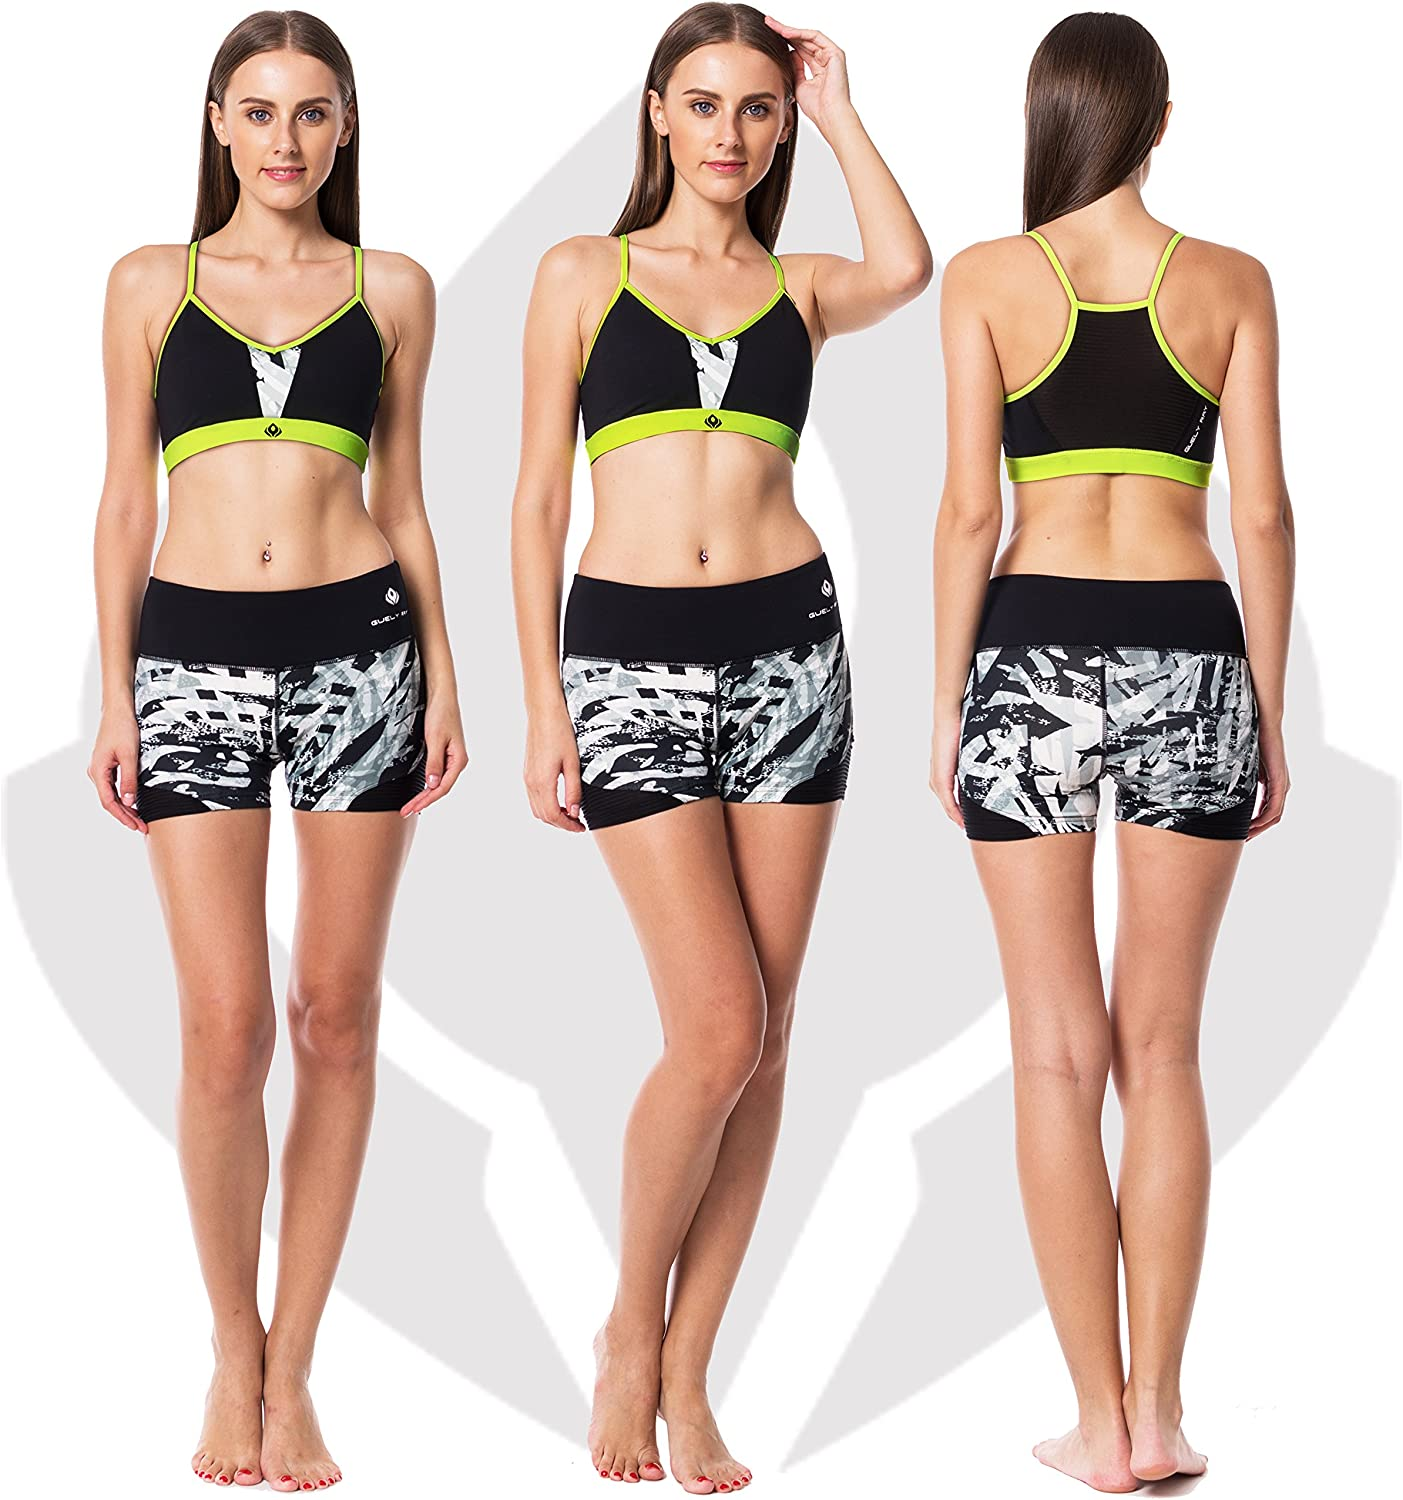 Guely Ray Womens Active Shorts for Workout /& Training with Hidden Pocket 11 Styles